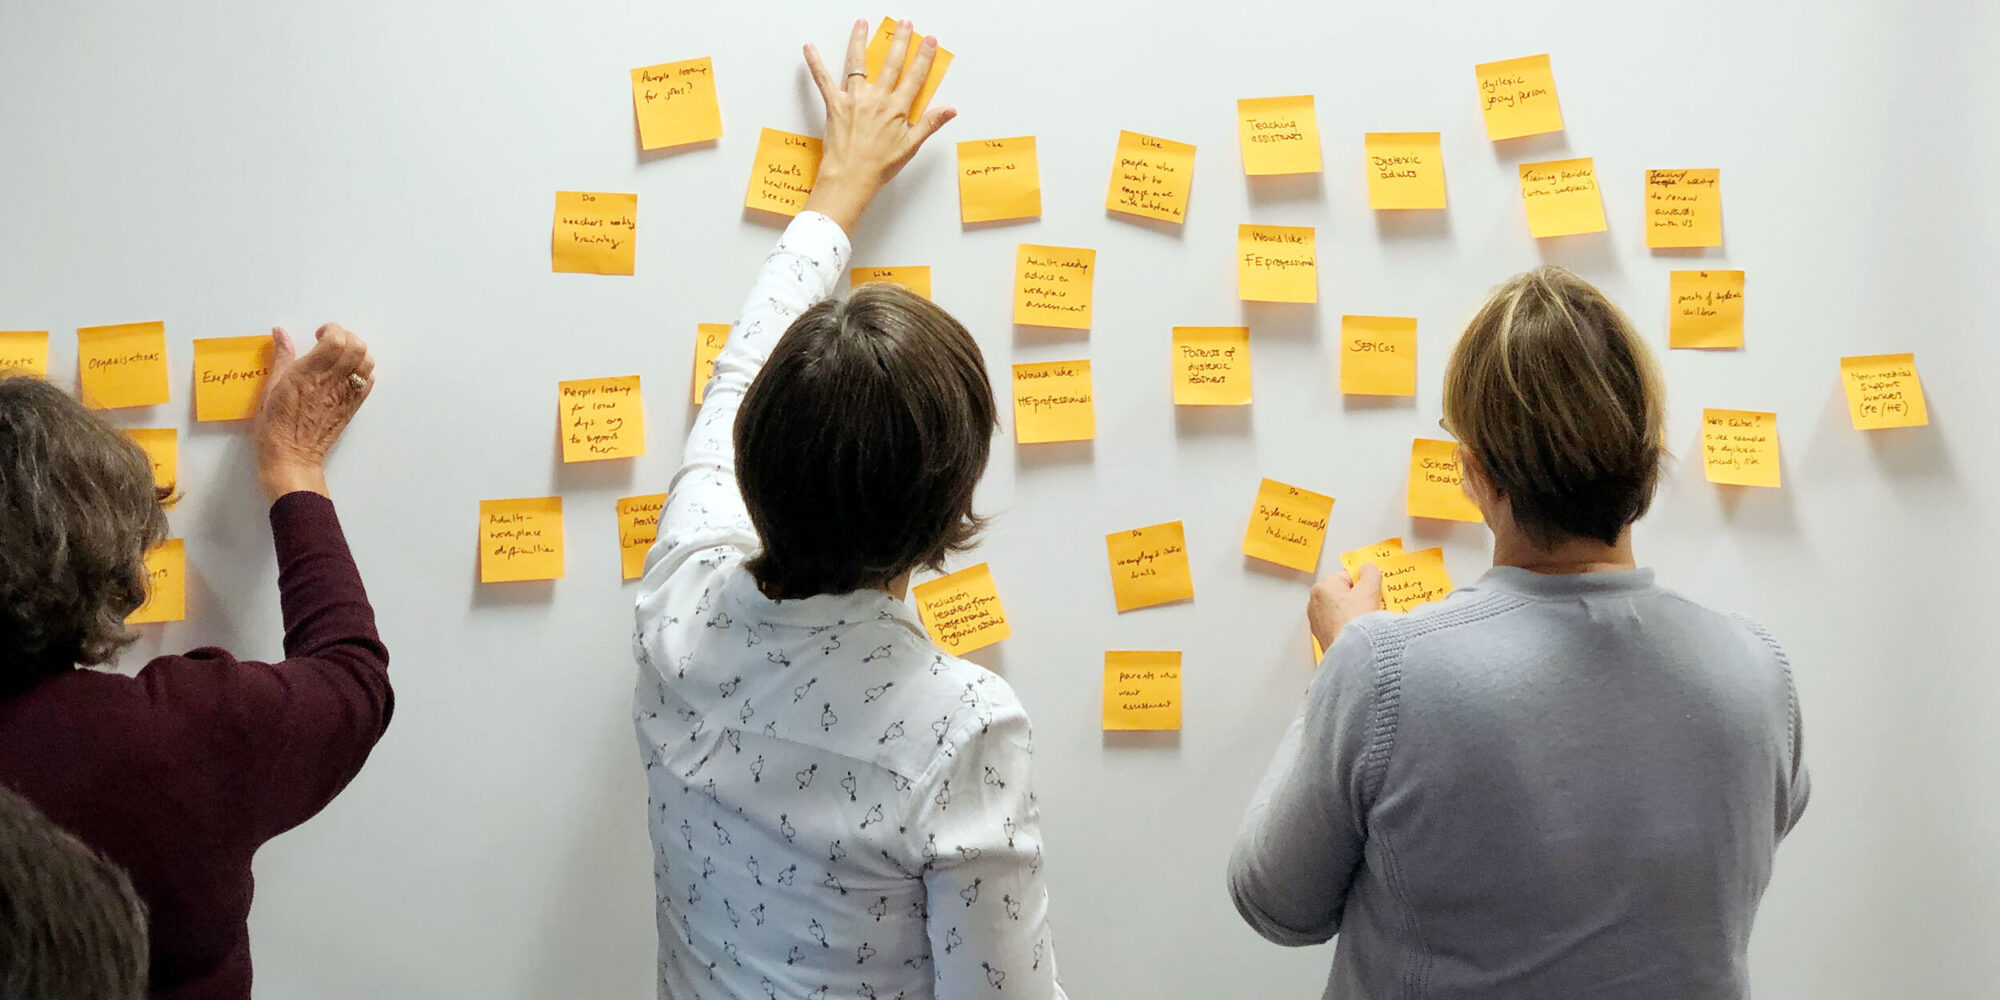 Three women post ideas to the wall on post-it notes